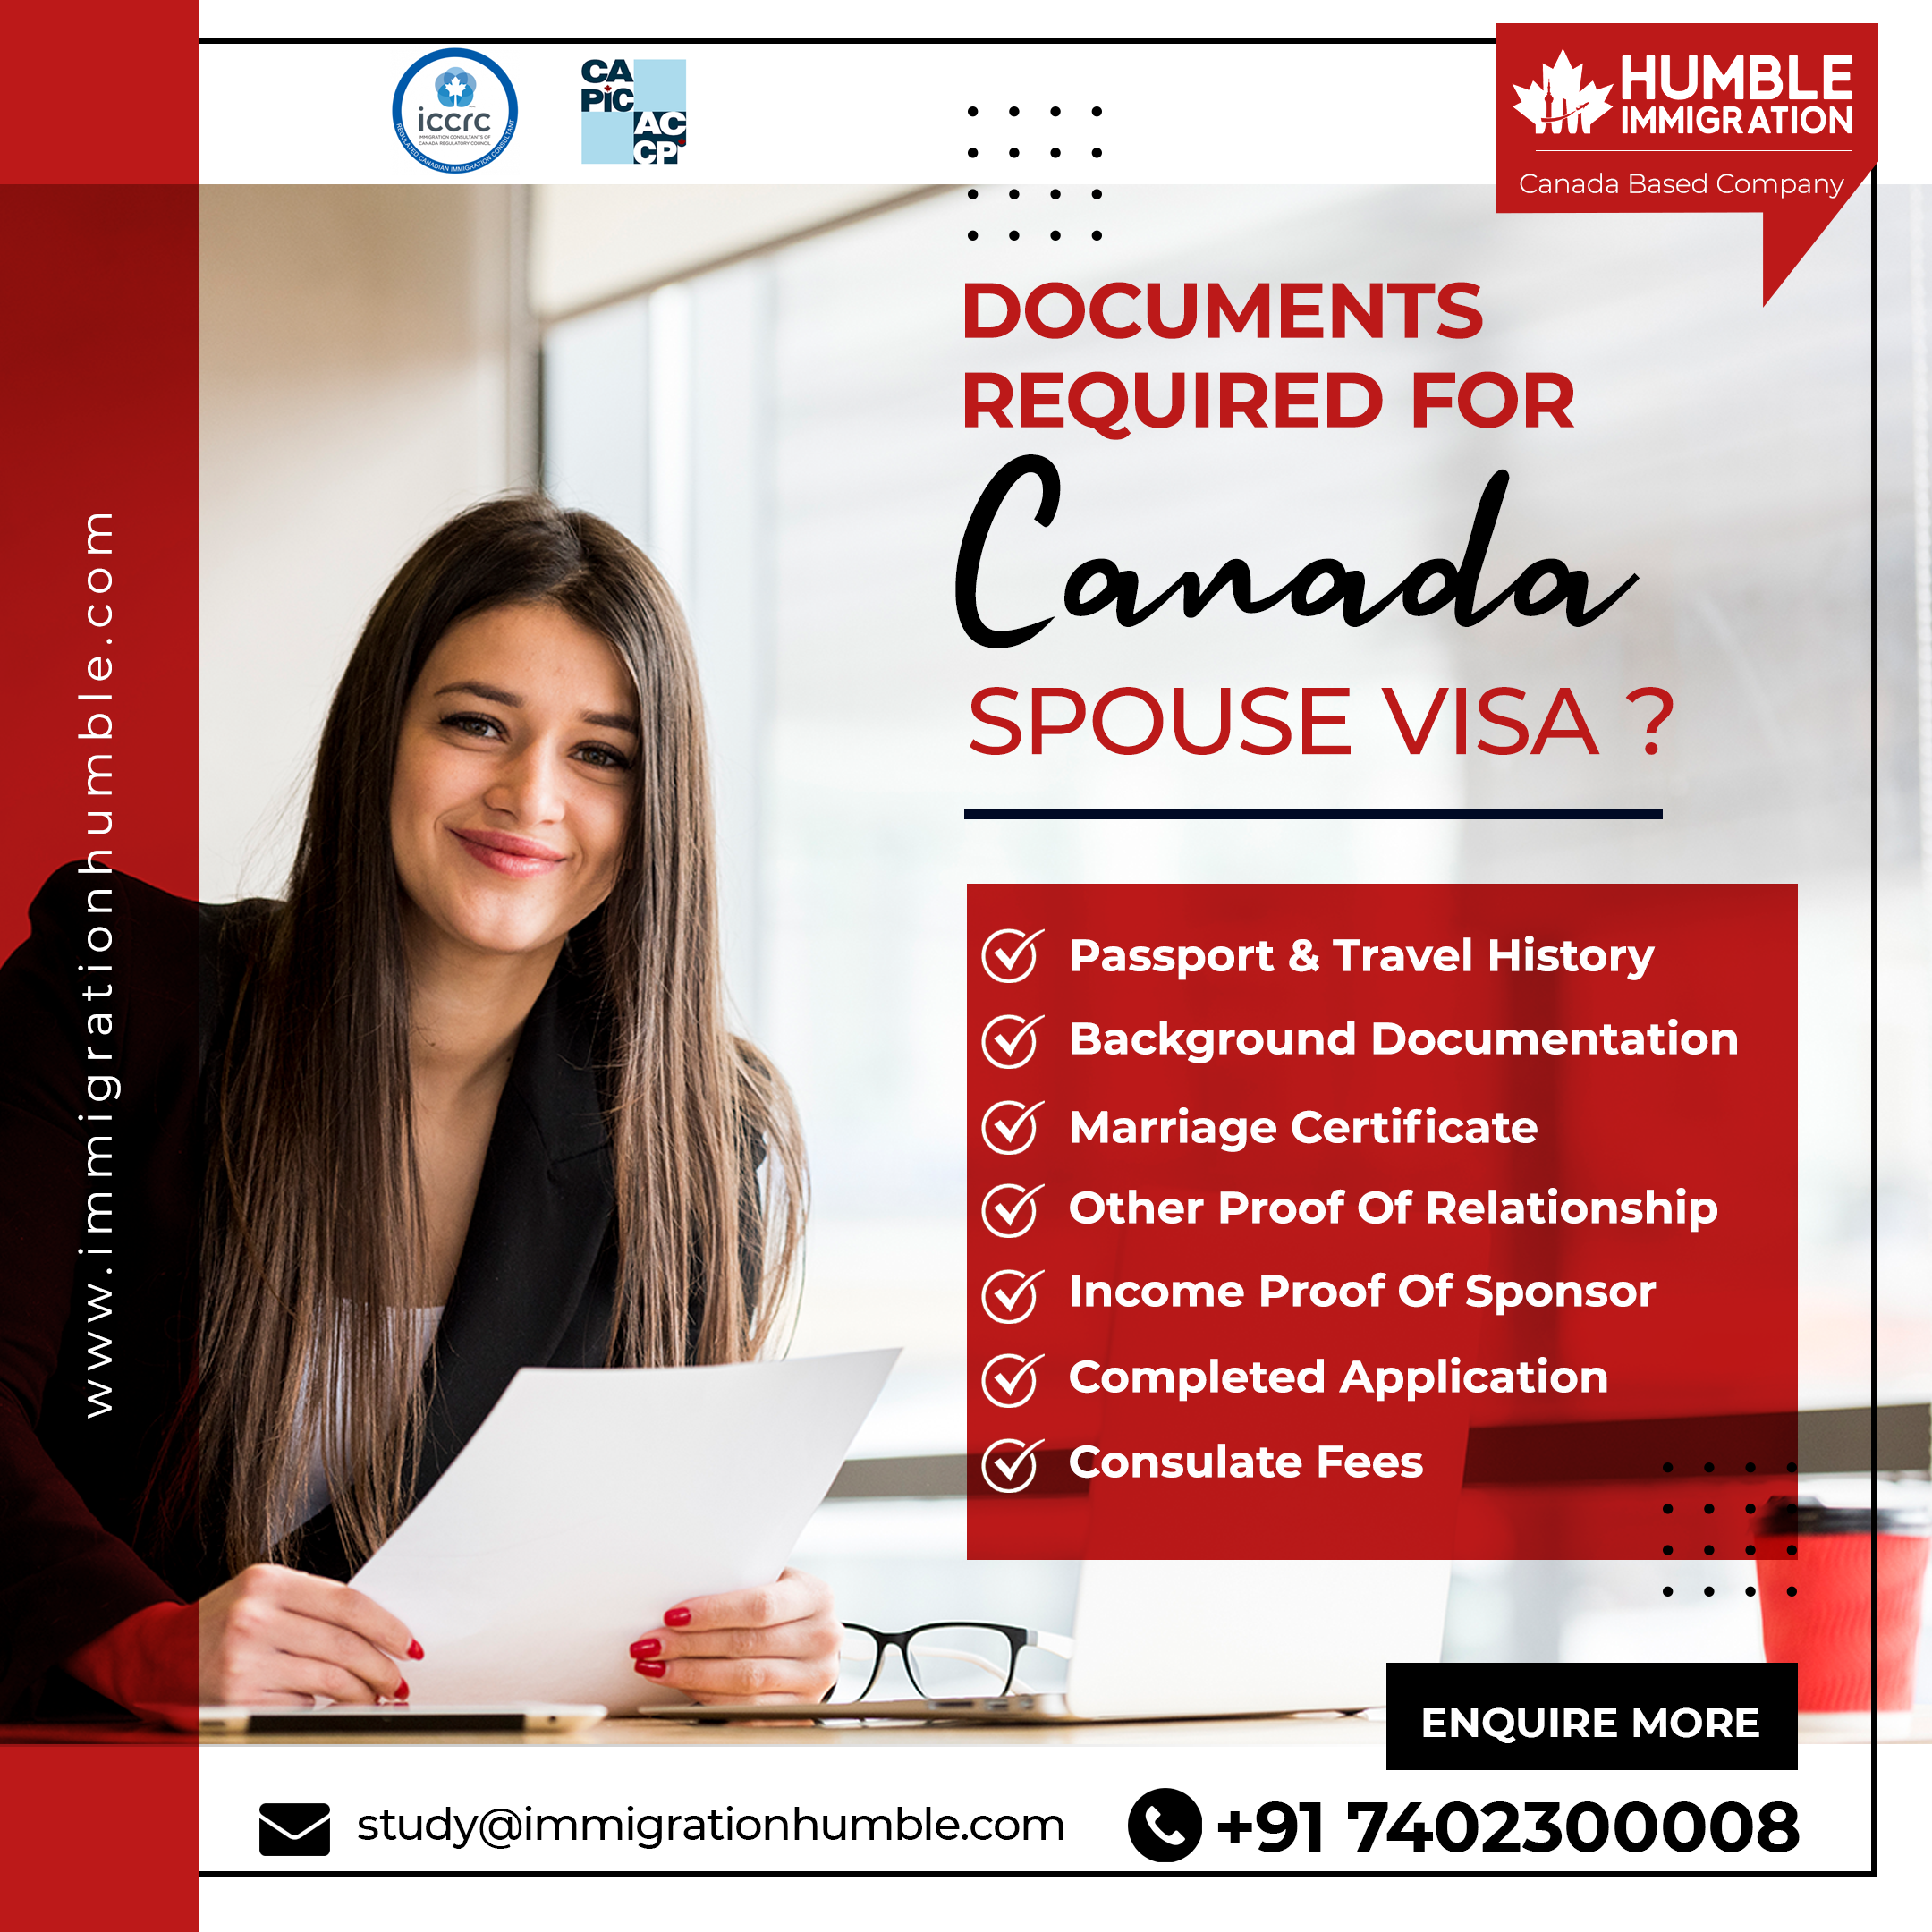 Work Permit in Canada for spouse/common-law partner